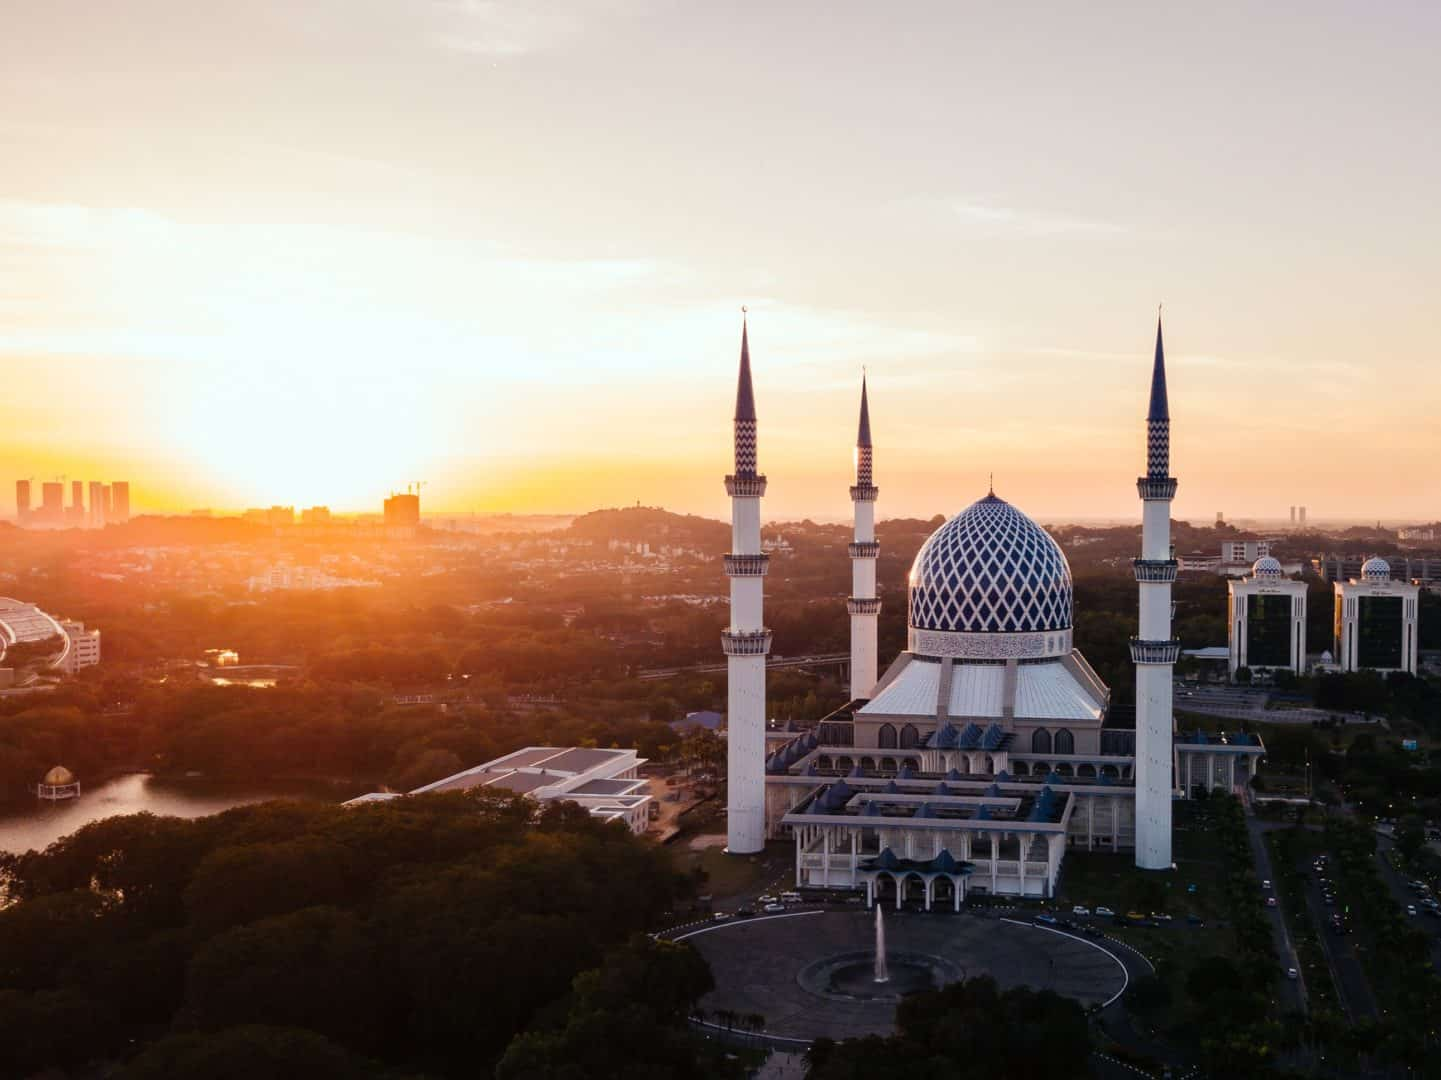 Halal food industry in Malaysia: Malaysia can command the